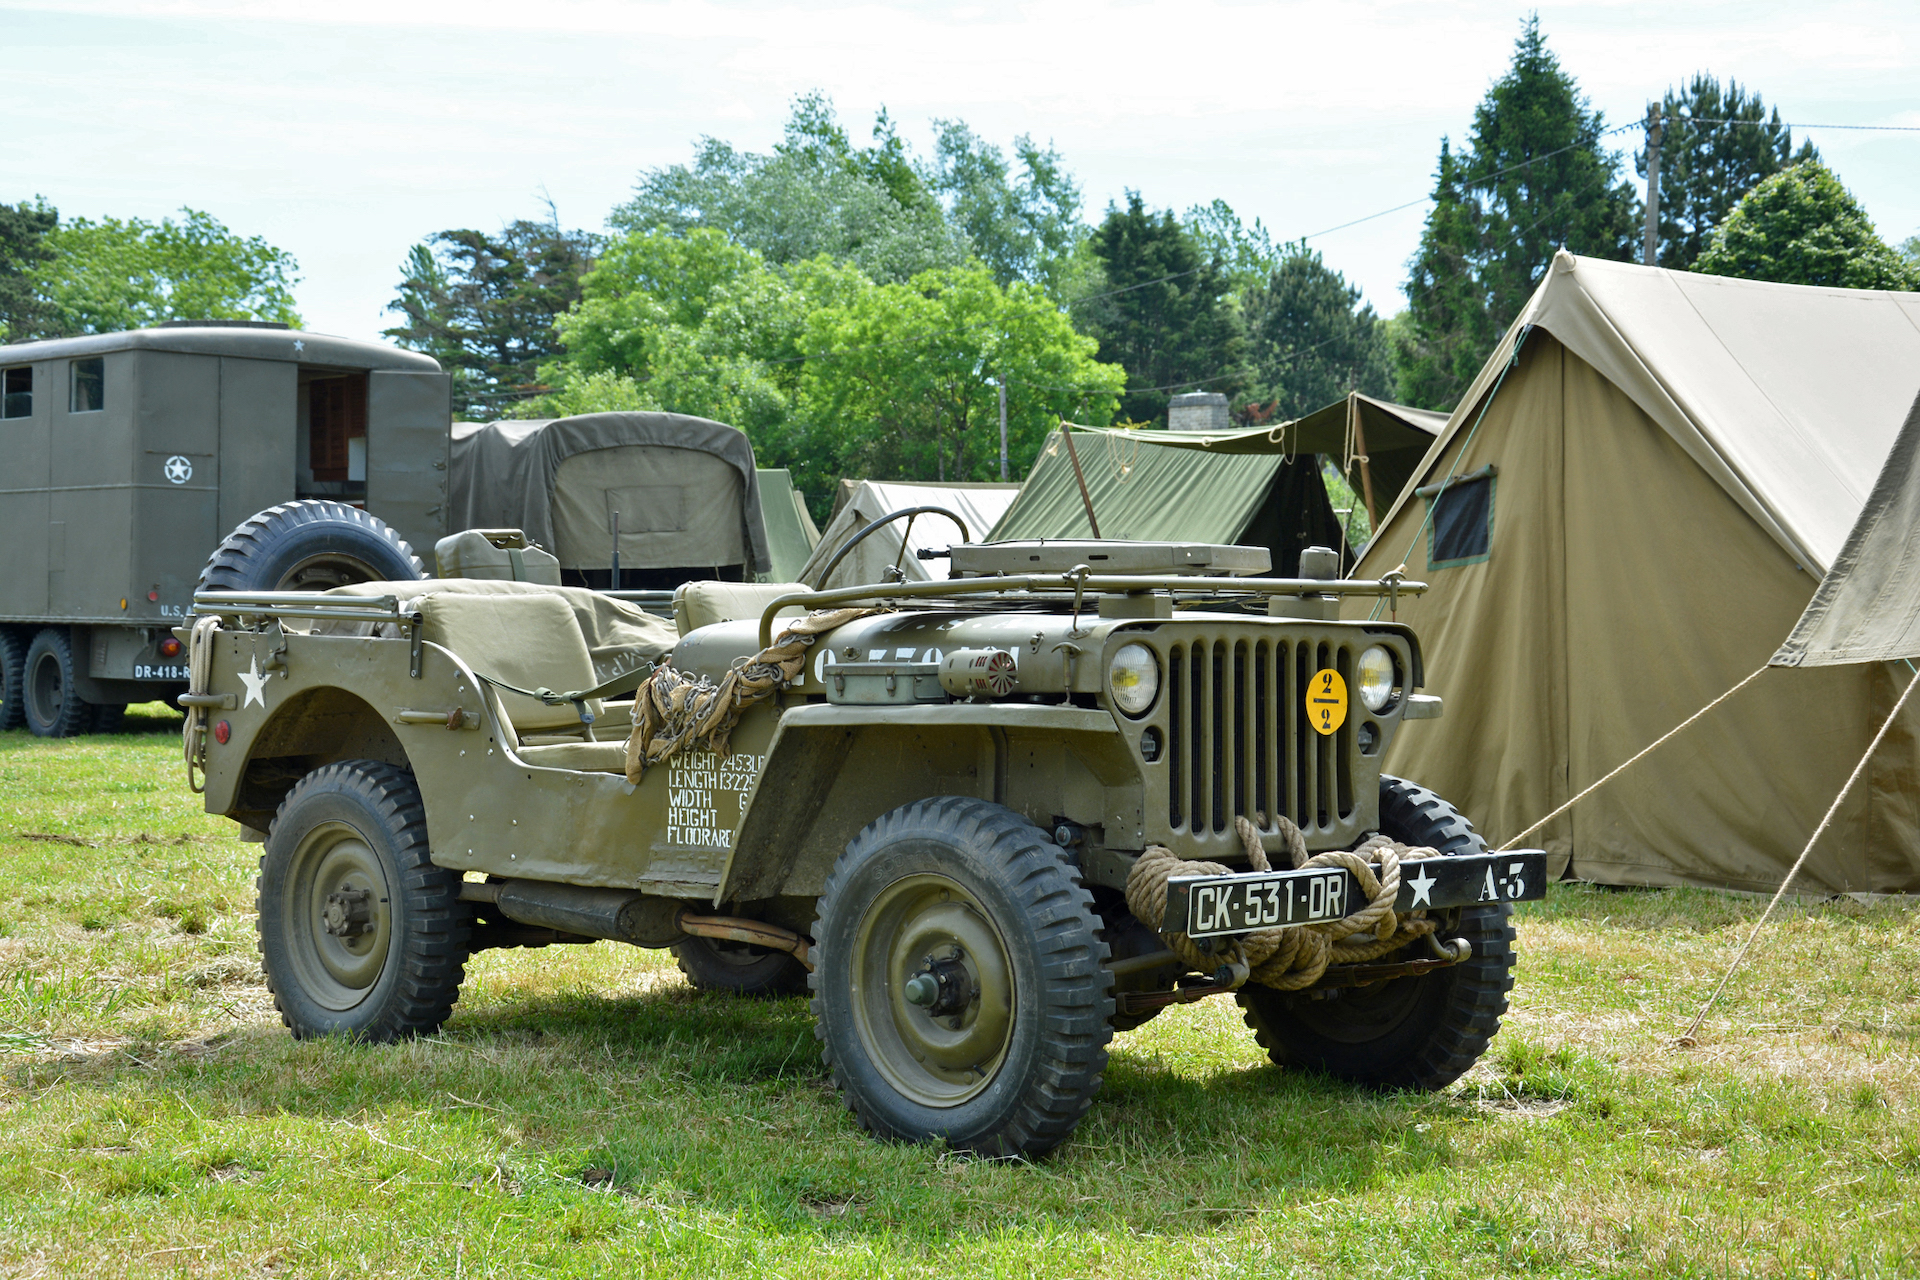 Role call: In Normandy, D-Day Jeeps left for dead brought France